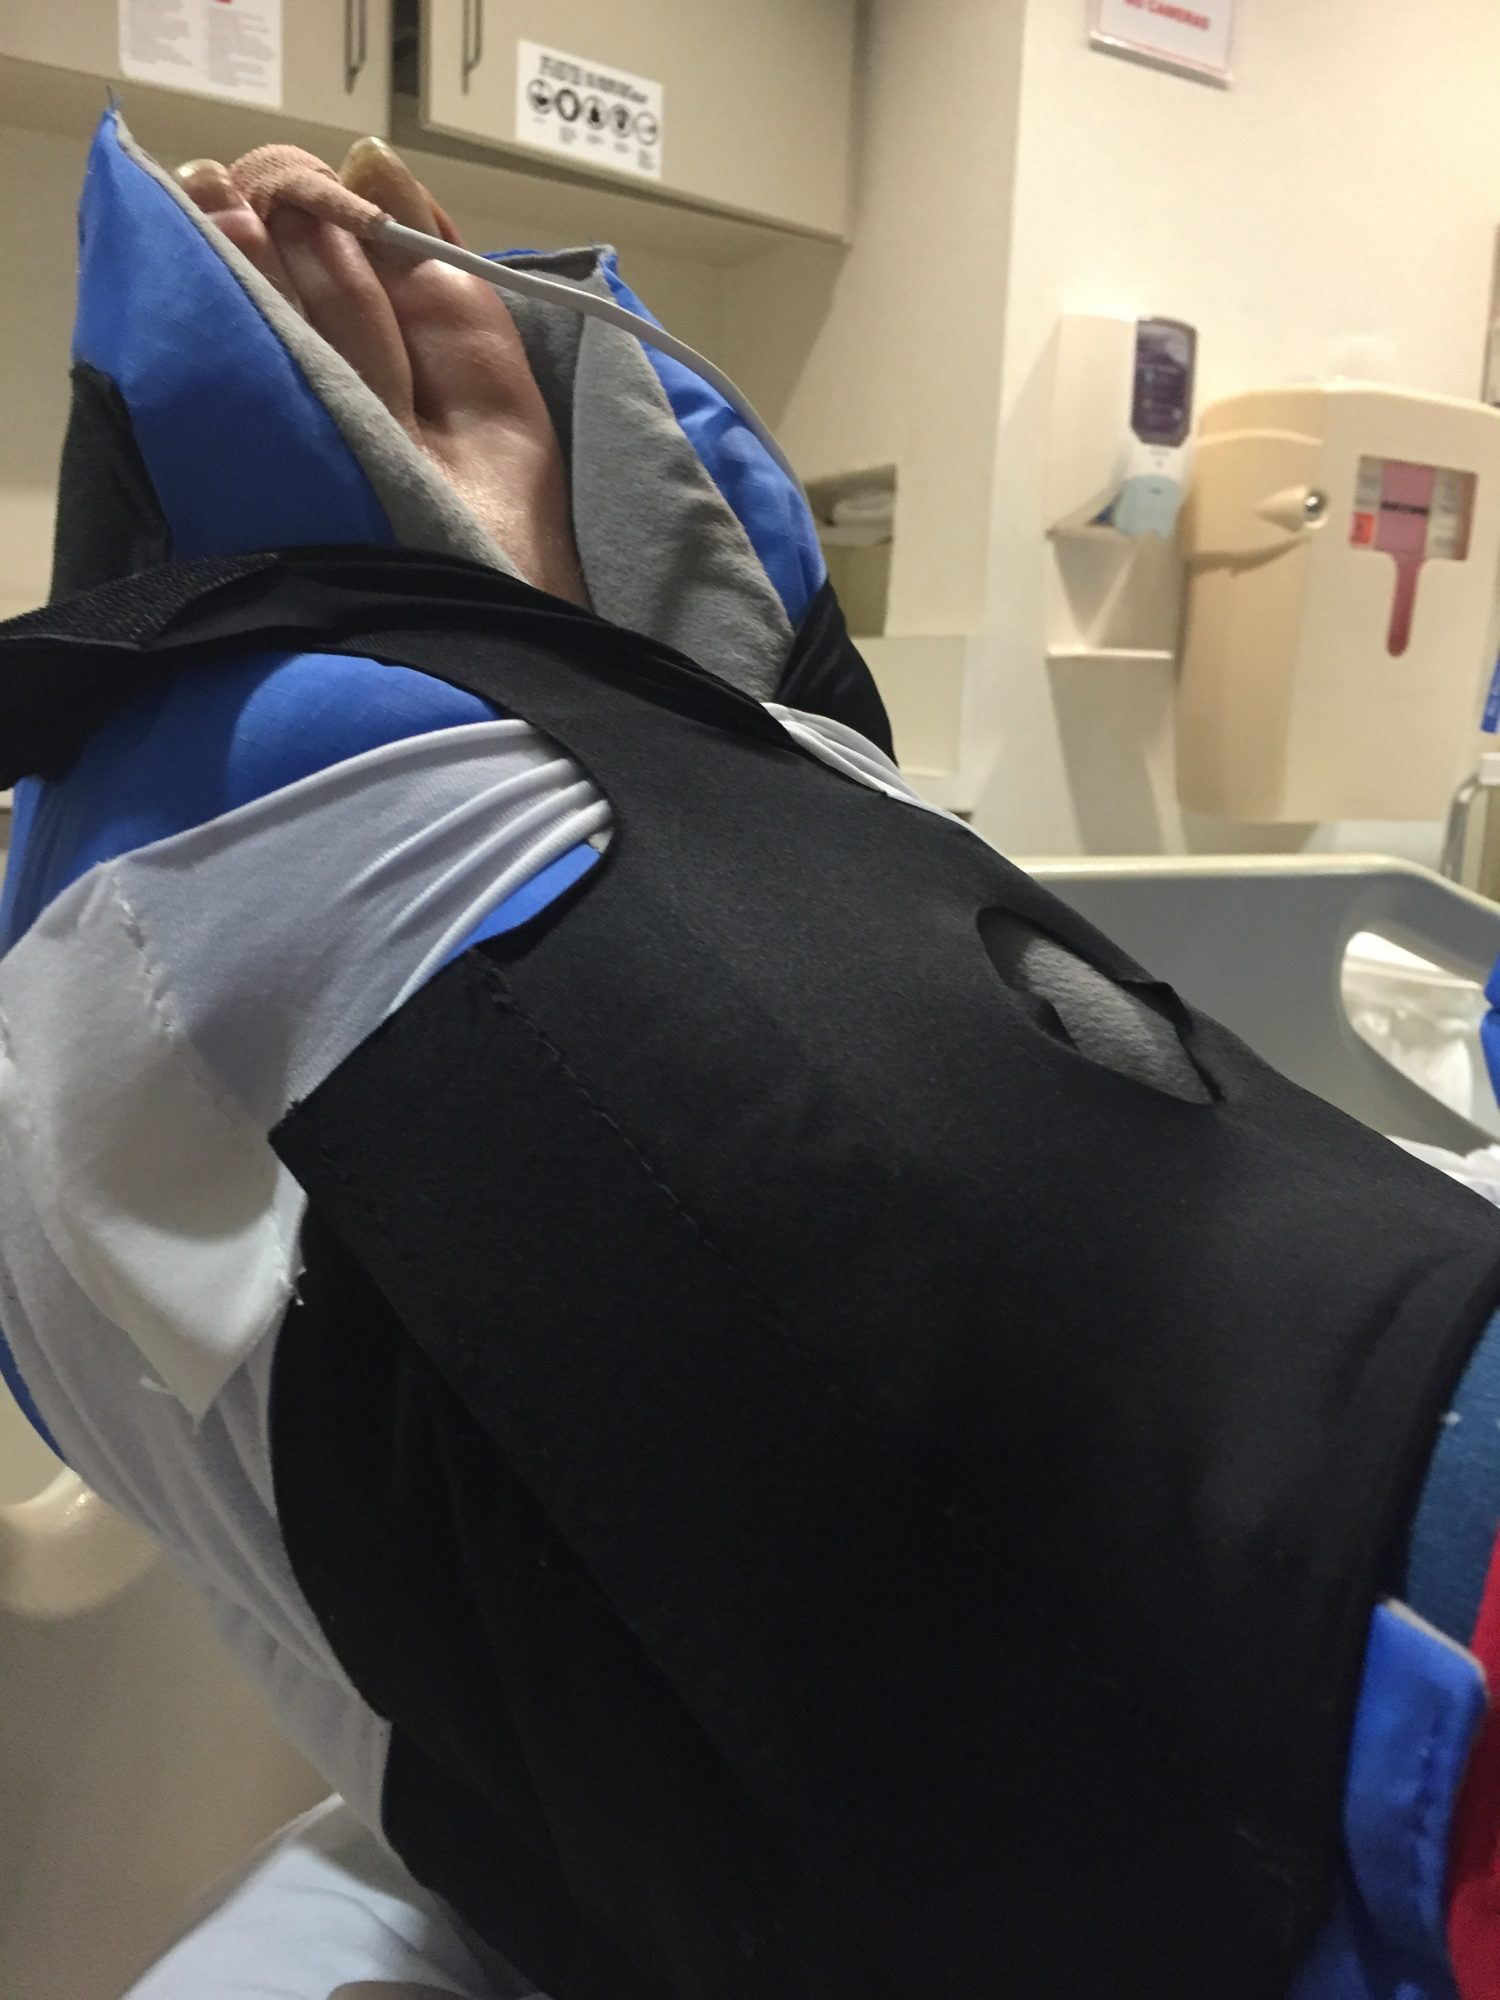 image of Dana's foot in the binding of the mechanized compressor